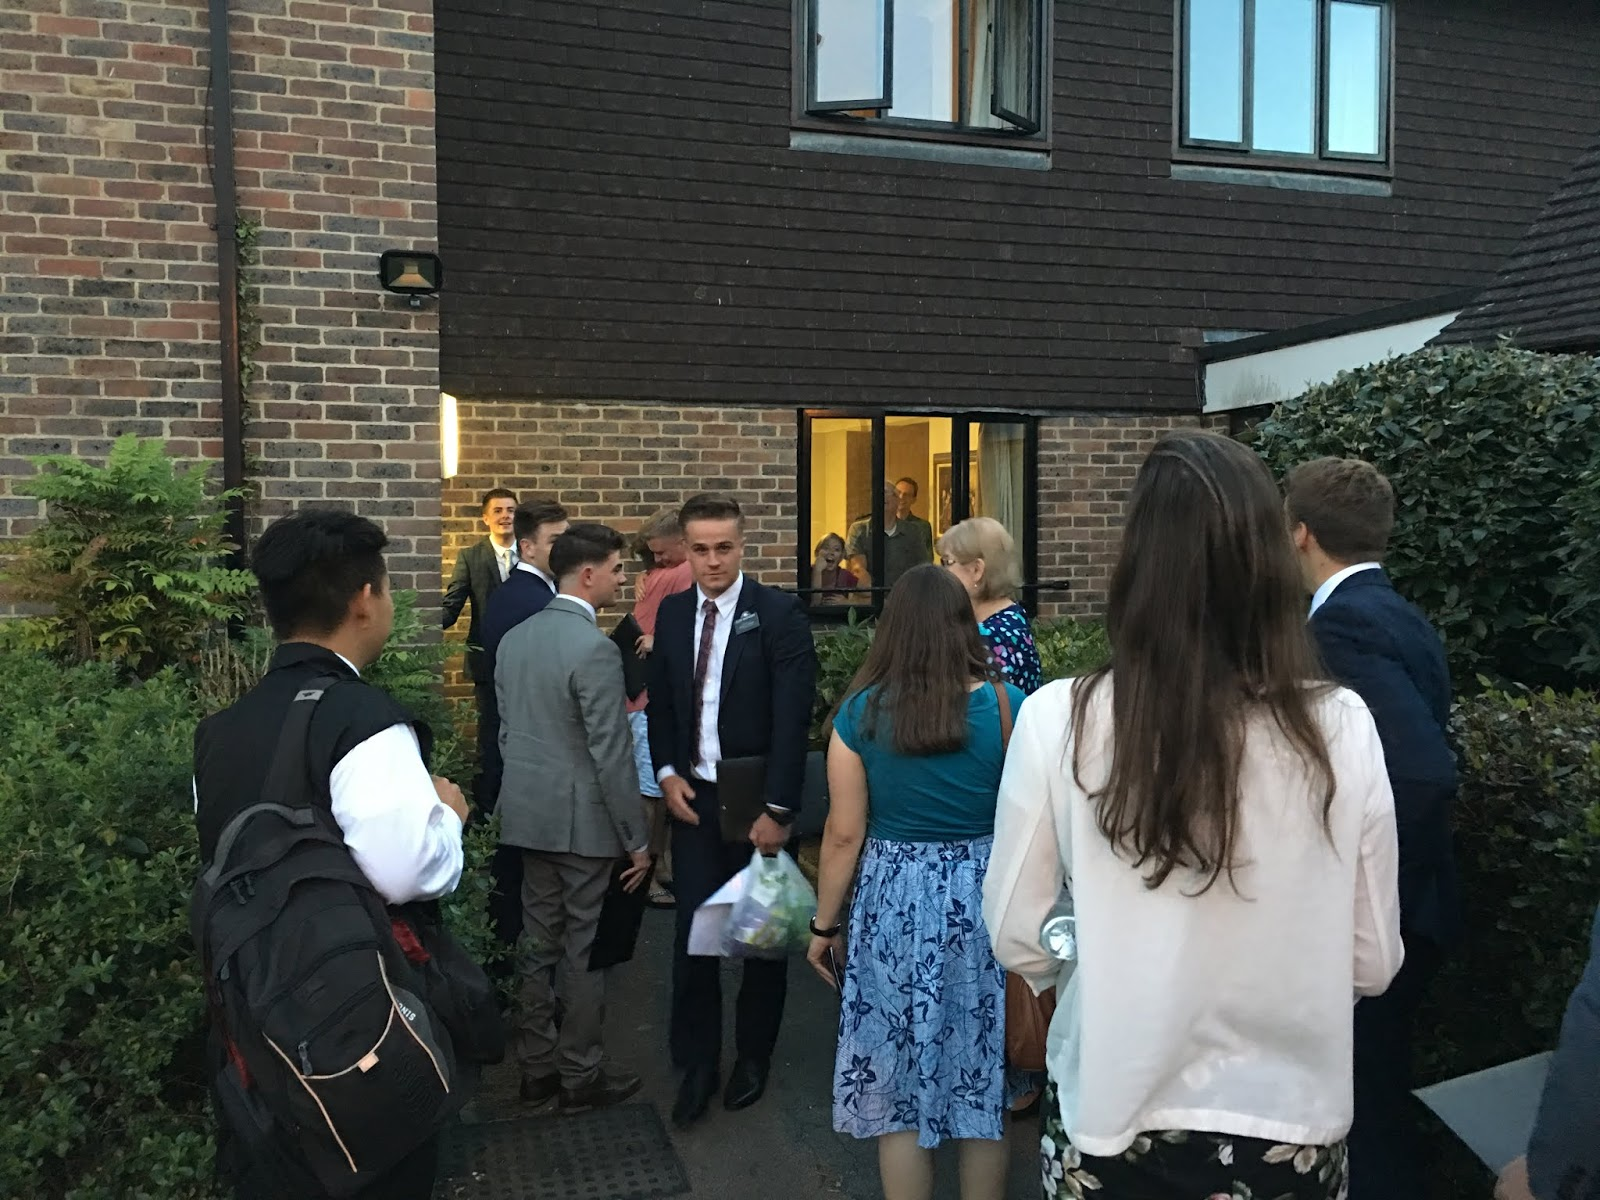 Our England London South Mission 2017-2018: England London